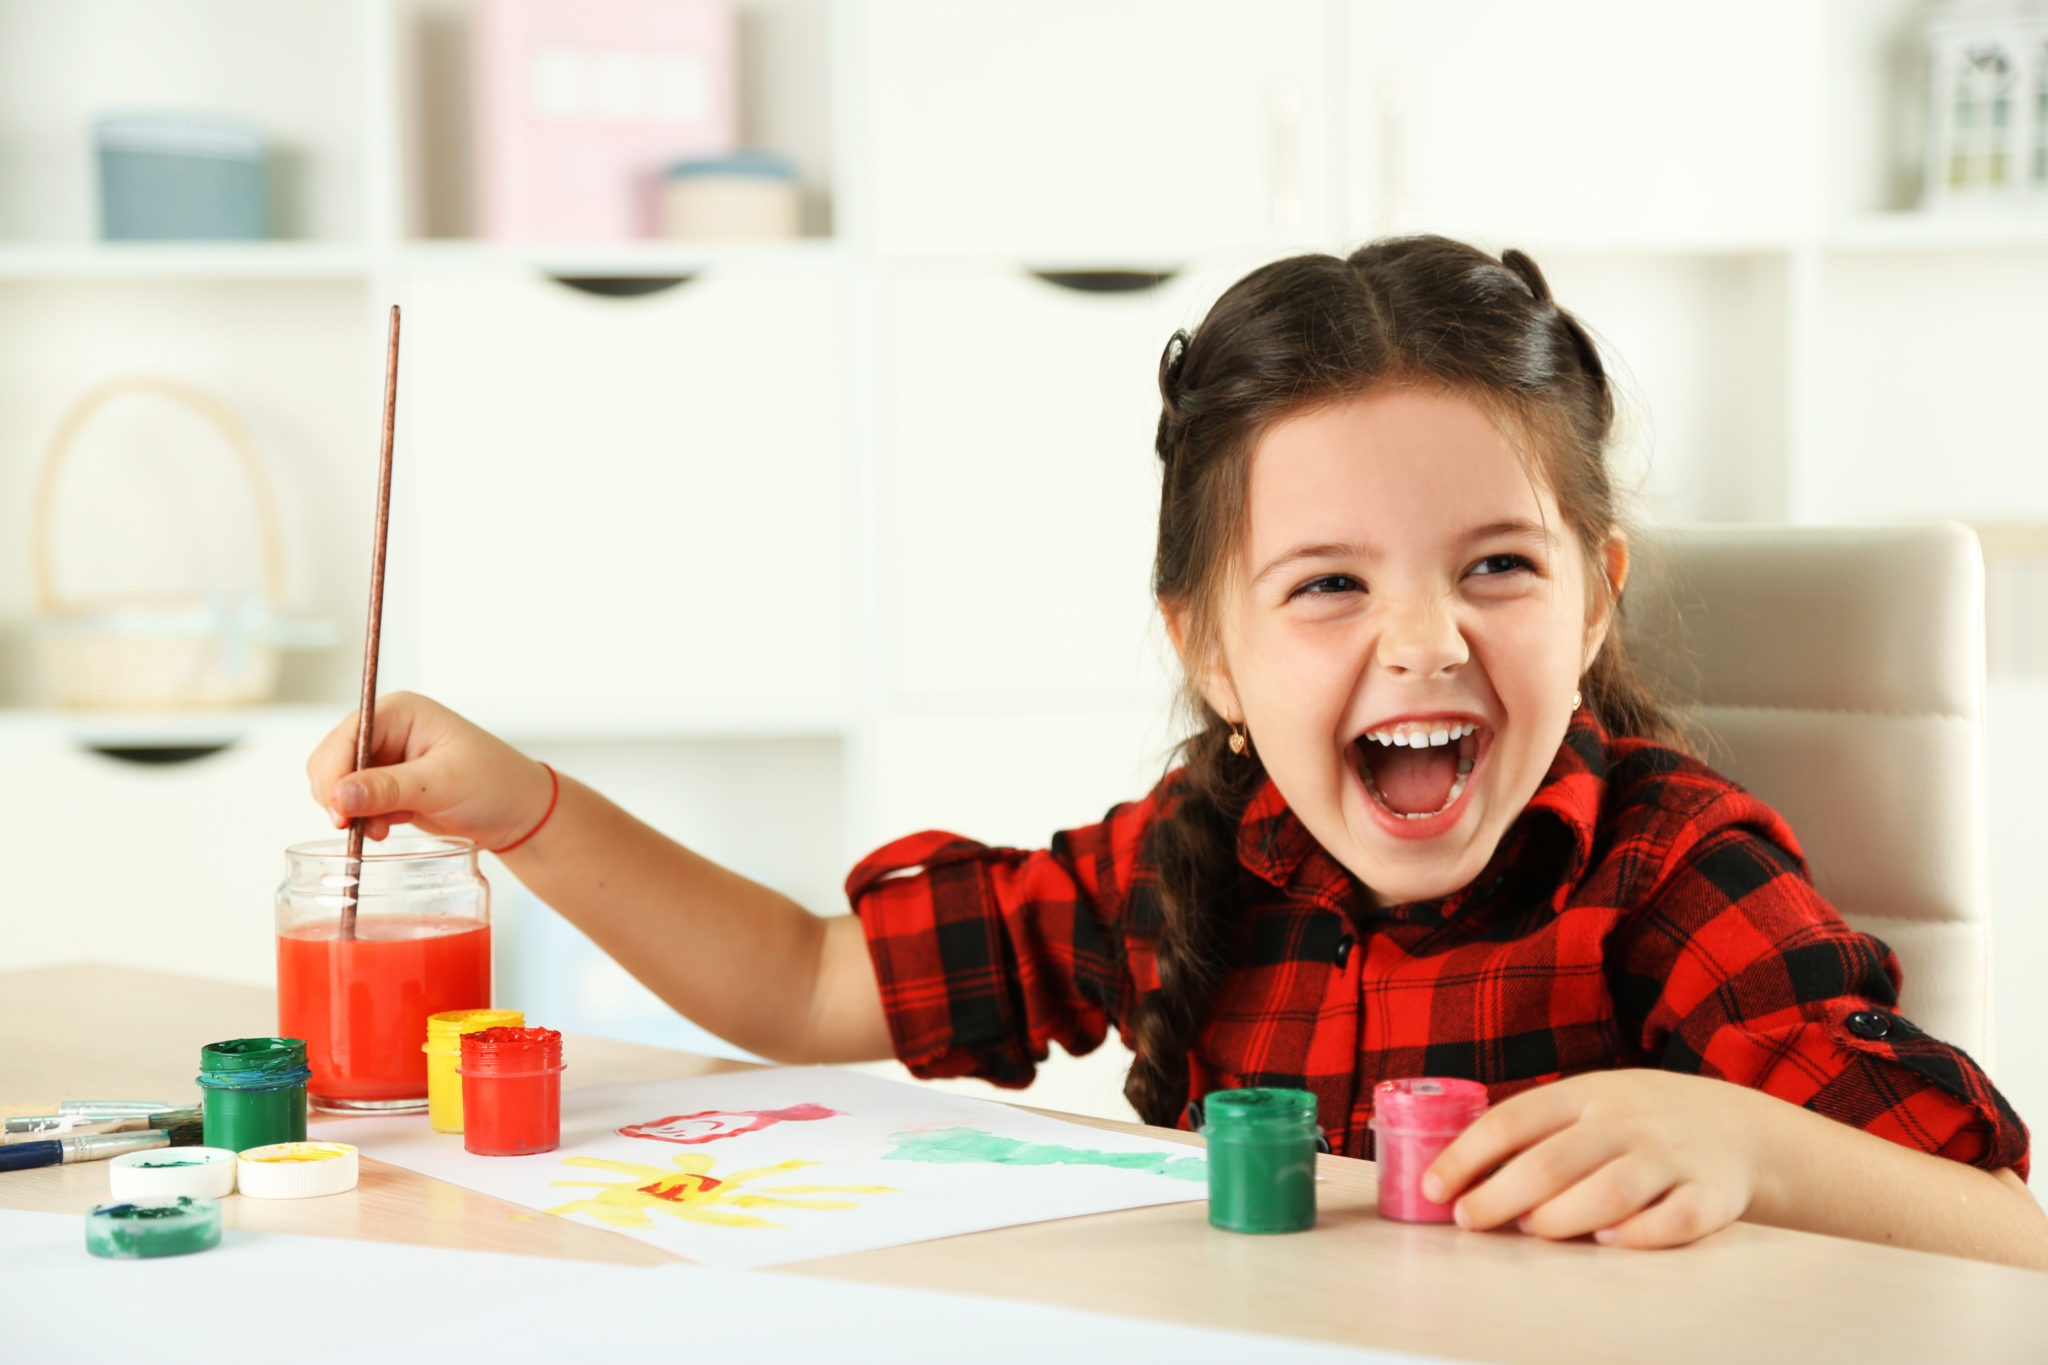 Can You Teach Your Non-Artistic Child To Be Creative? Science Says Yes!